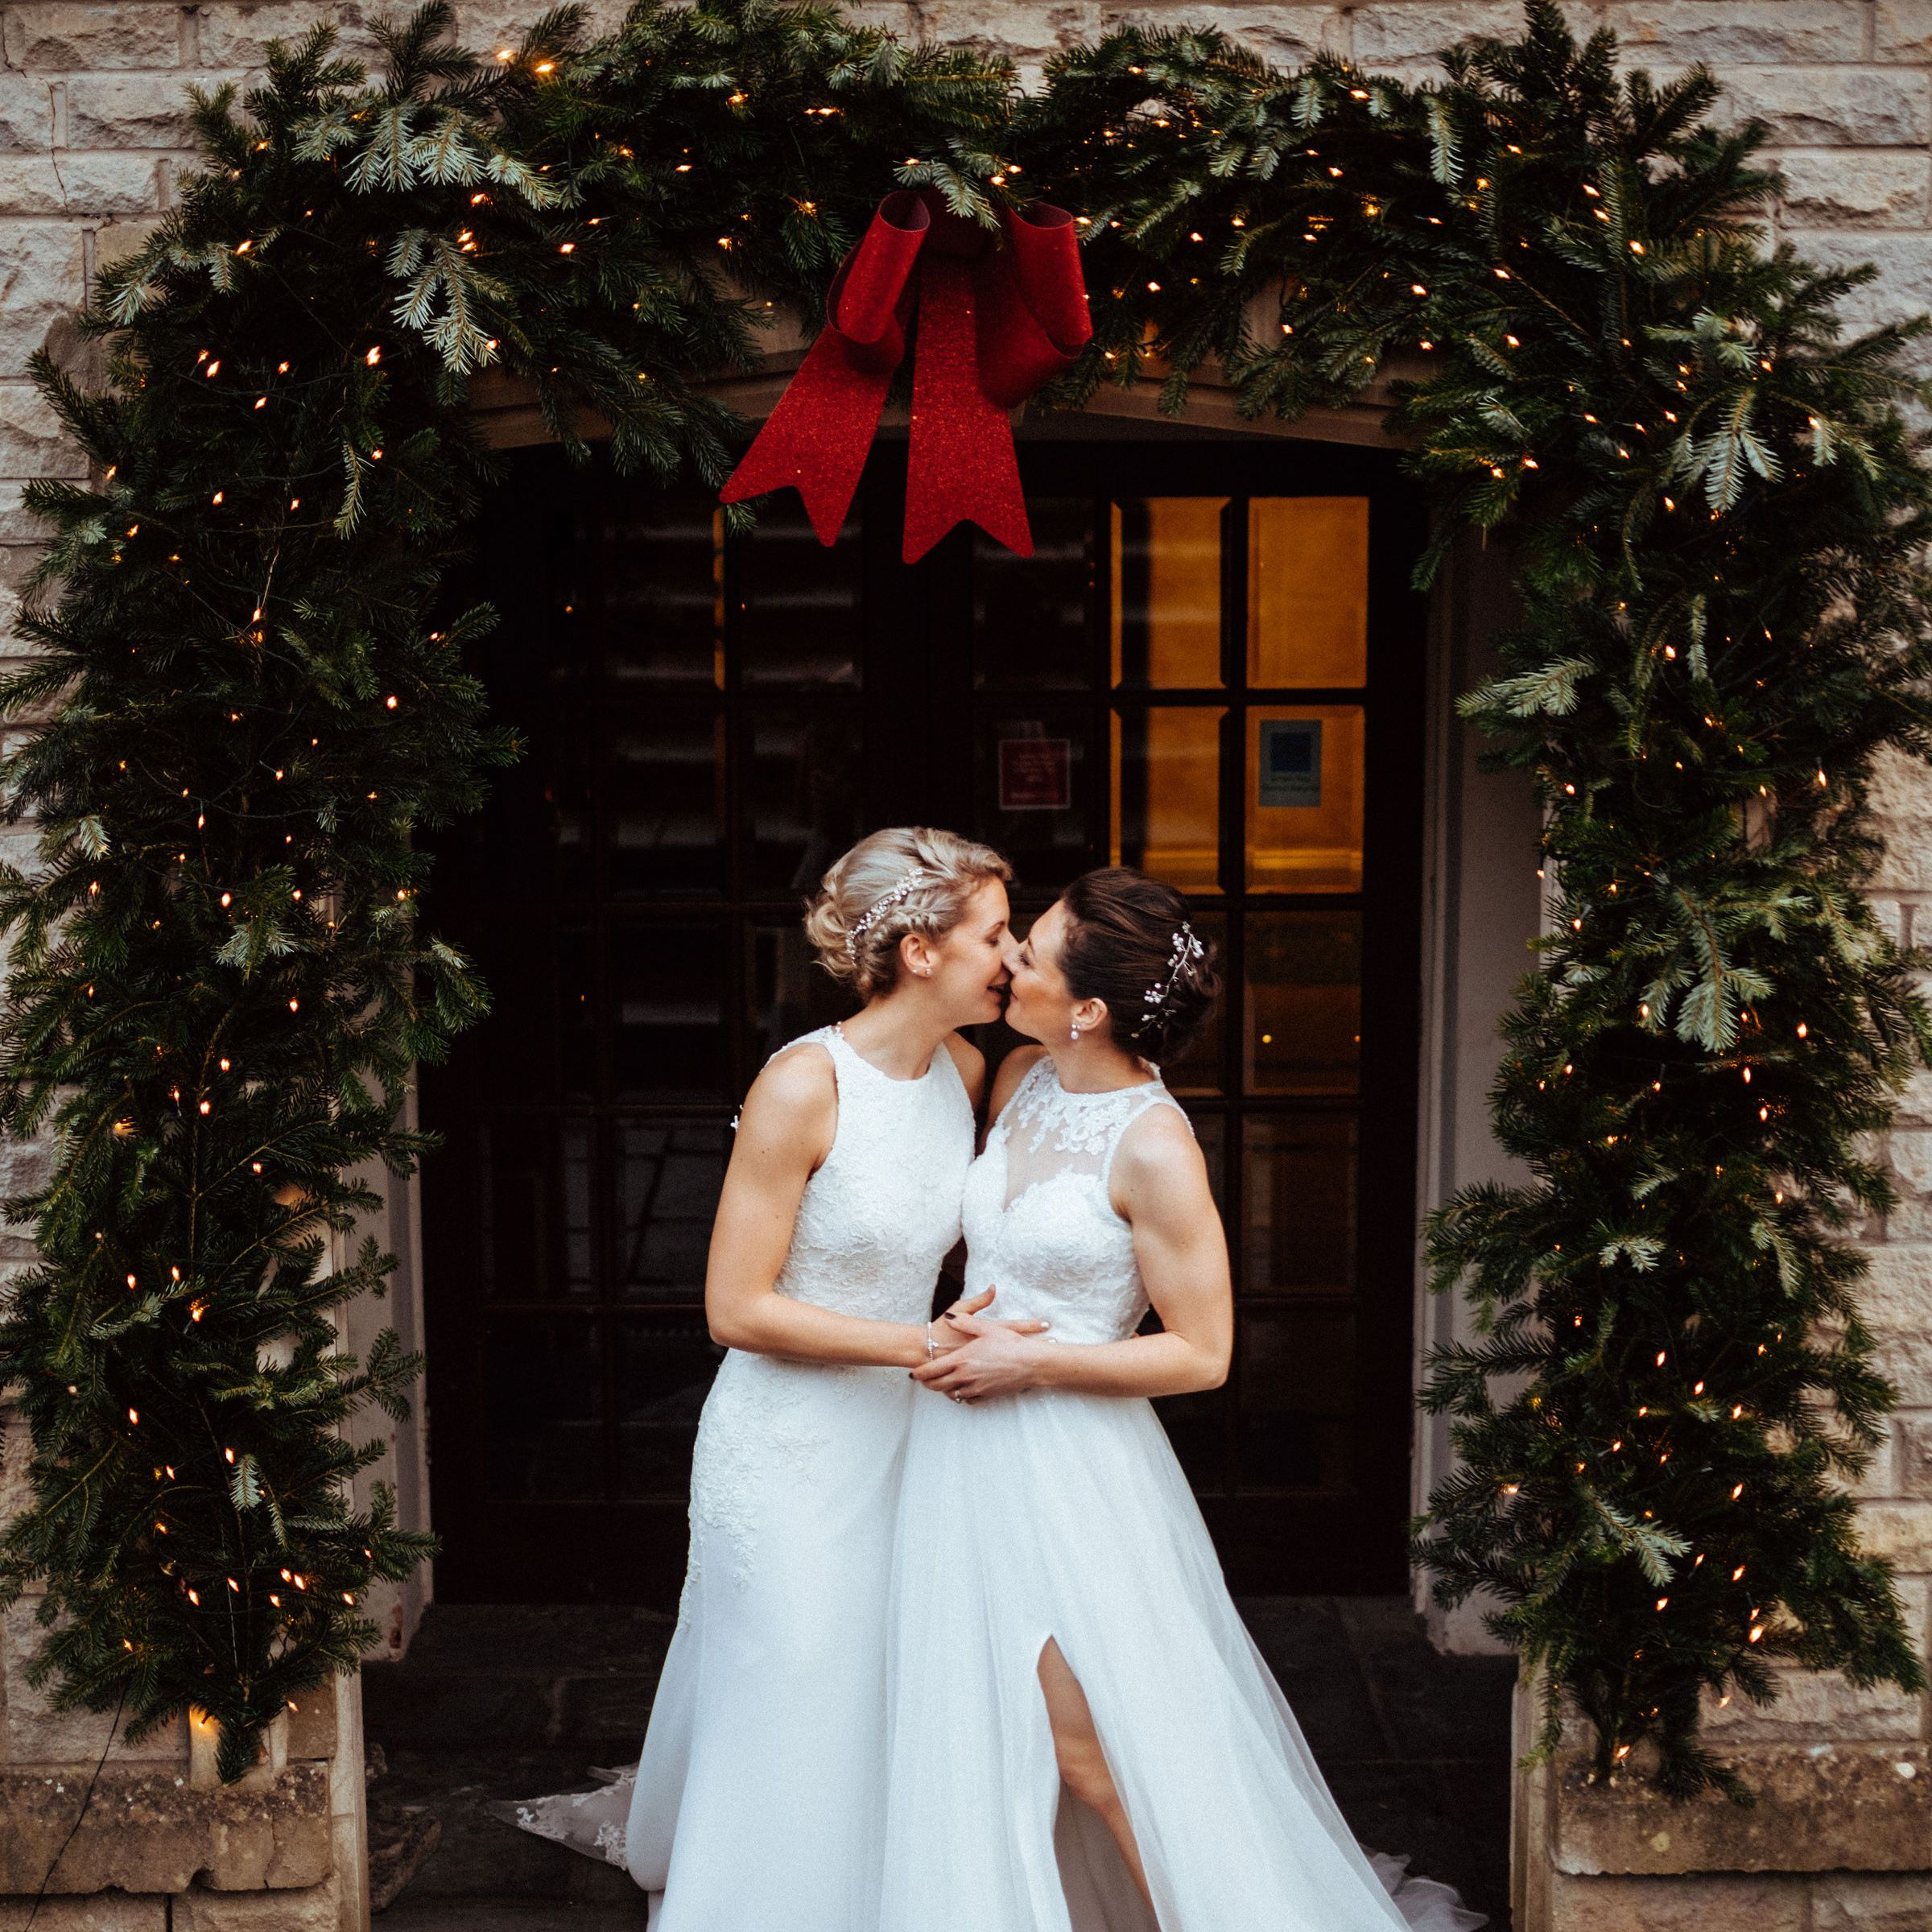 17 Christmas Wedding Ideas That'll Put You in the Holiday Spirit